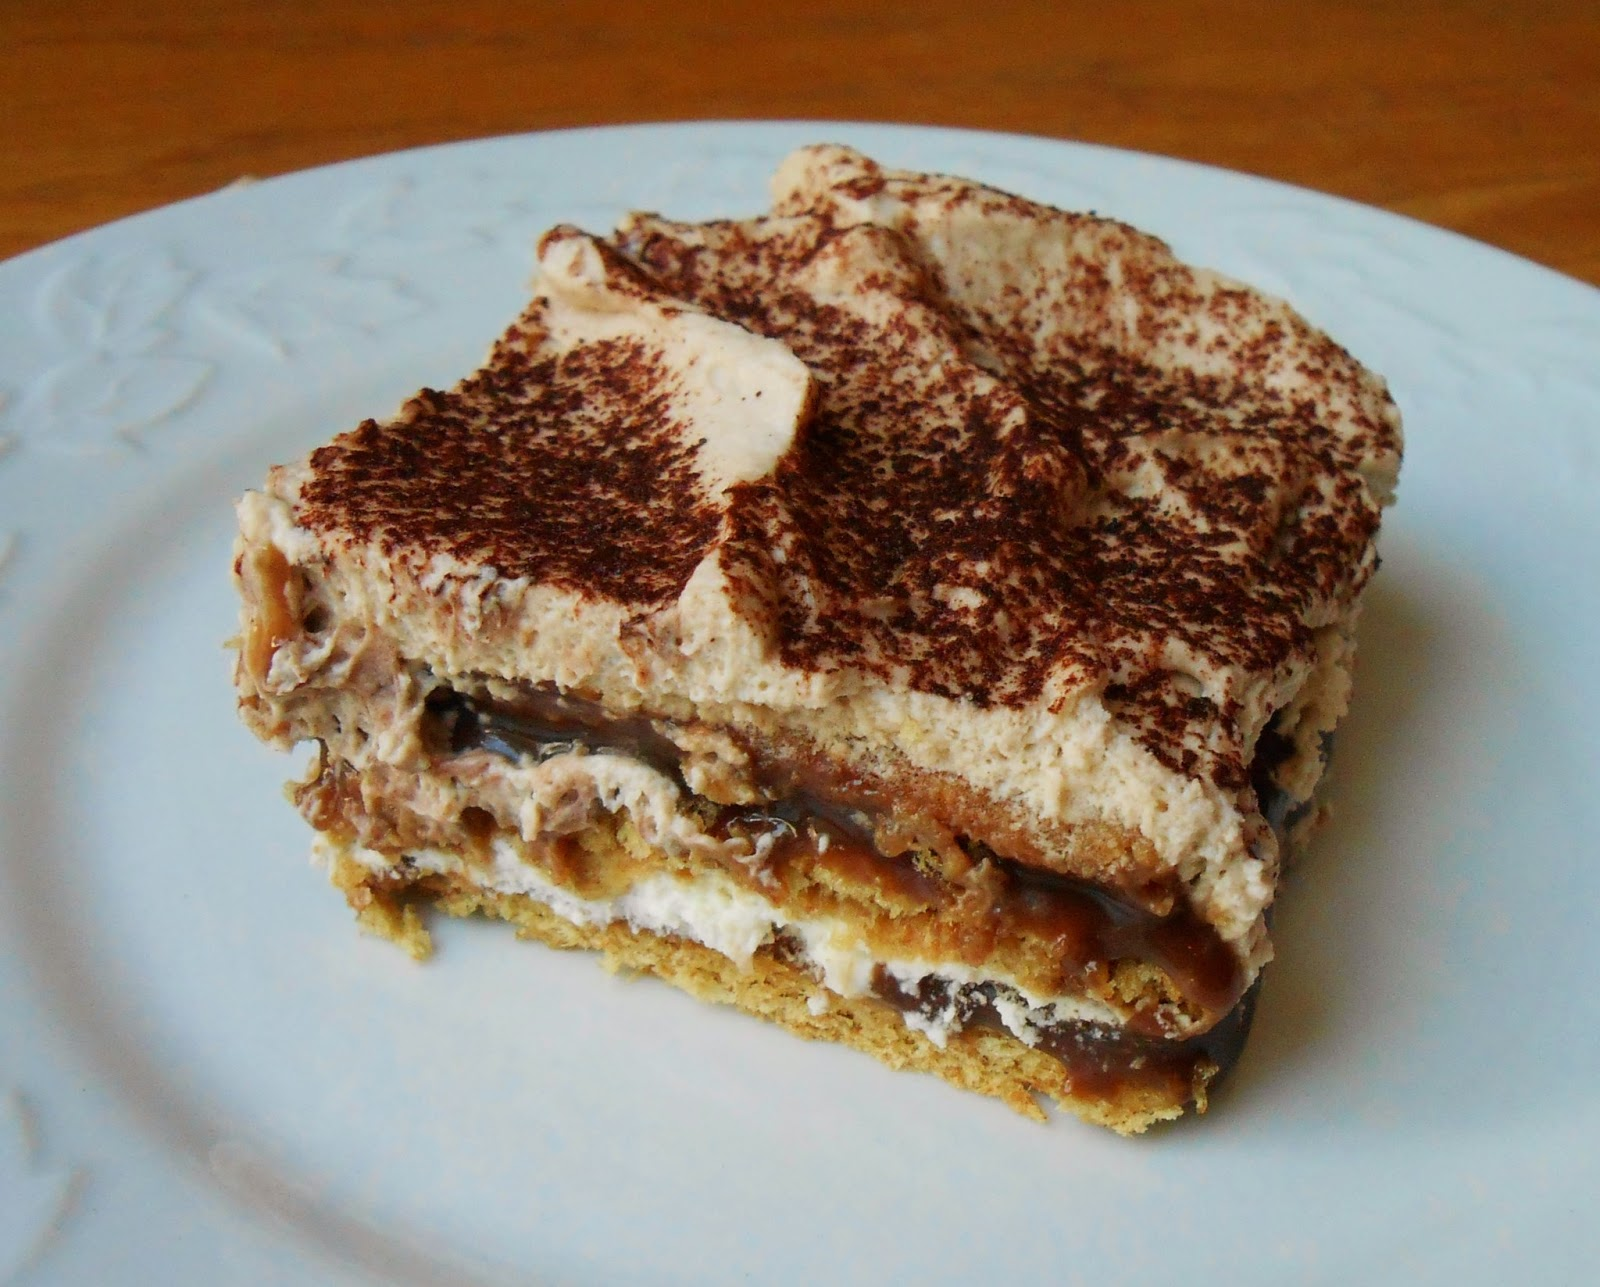 cake fudgy chocolate peanut butter cup icebox cake classic icebox cake ...